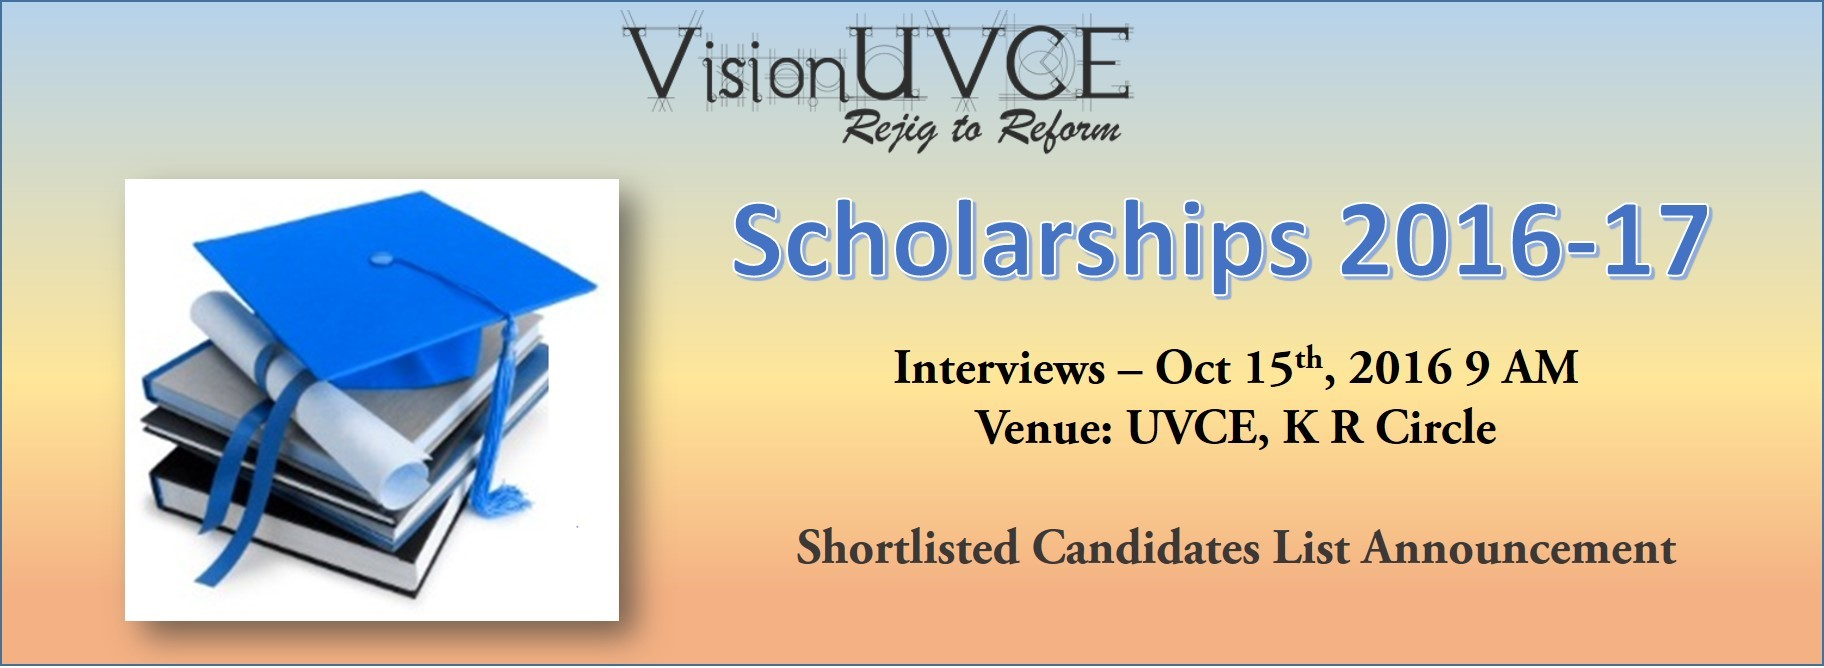 VisionUVCE Scholarships 2016-17 Shortlist